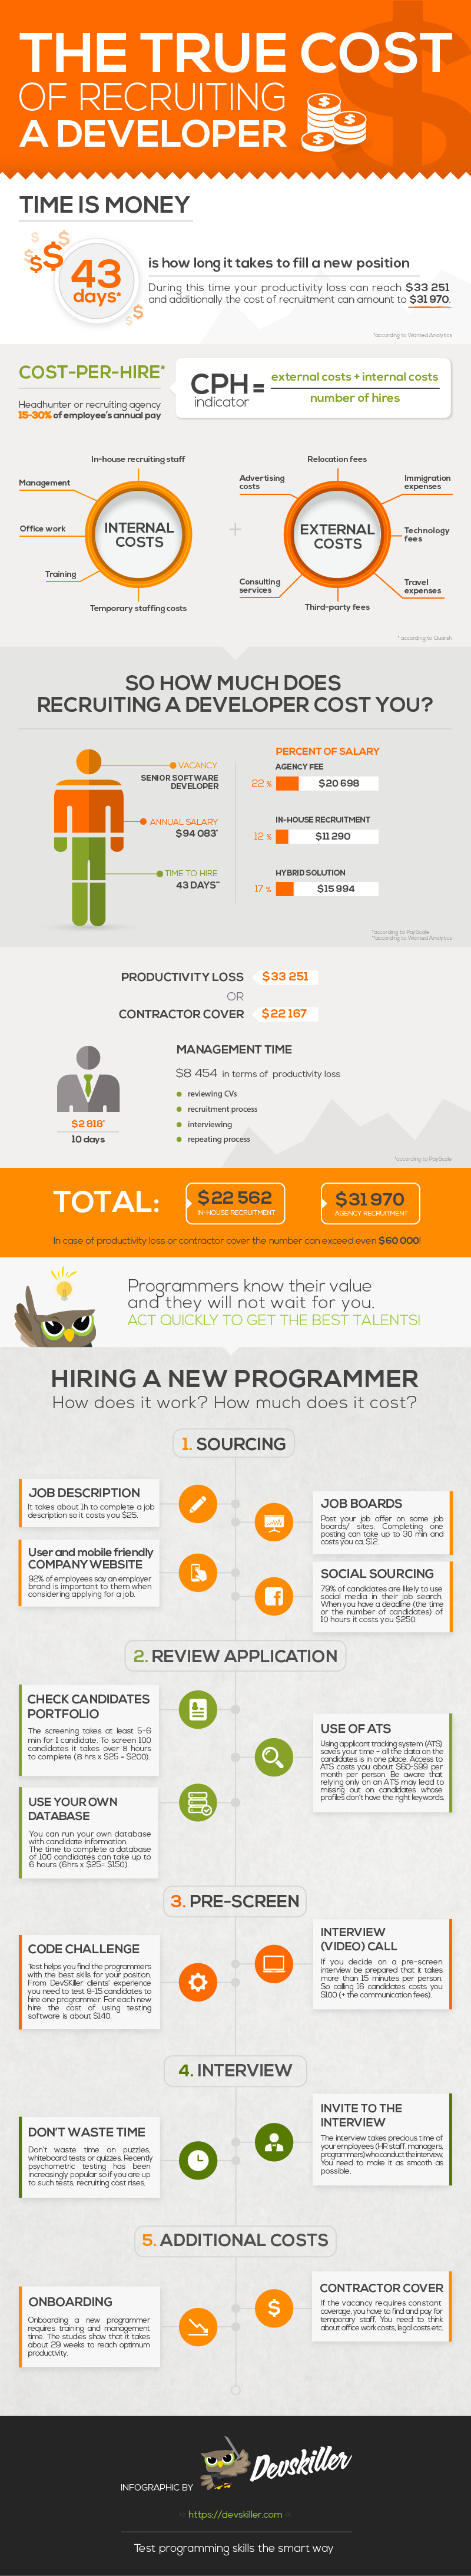 True Cost Of Recruiting a Developer